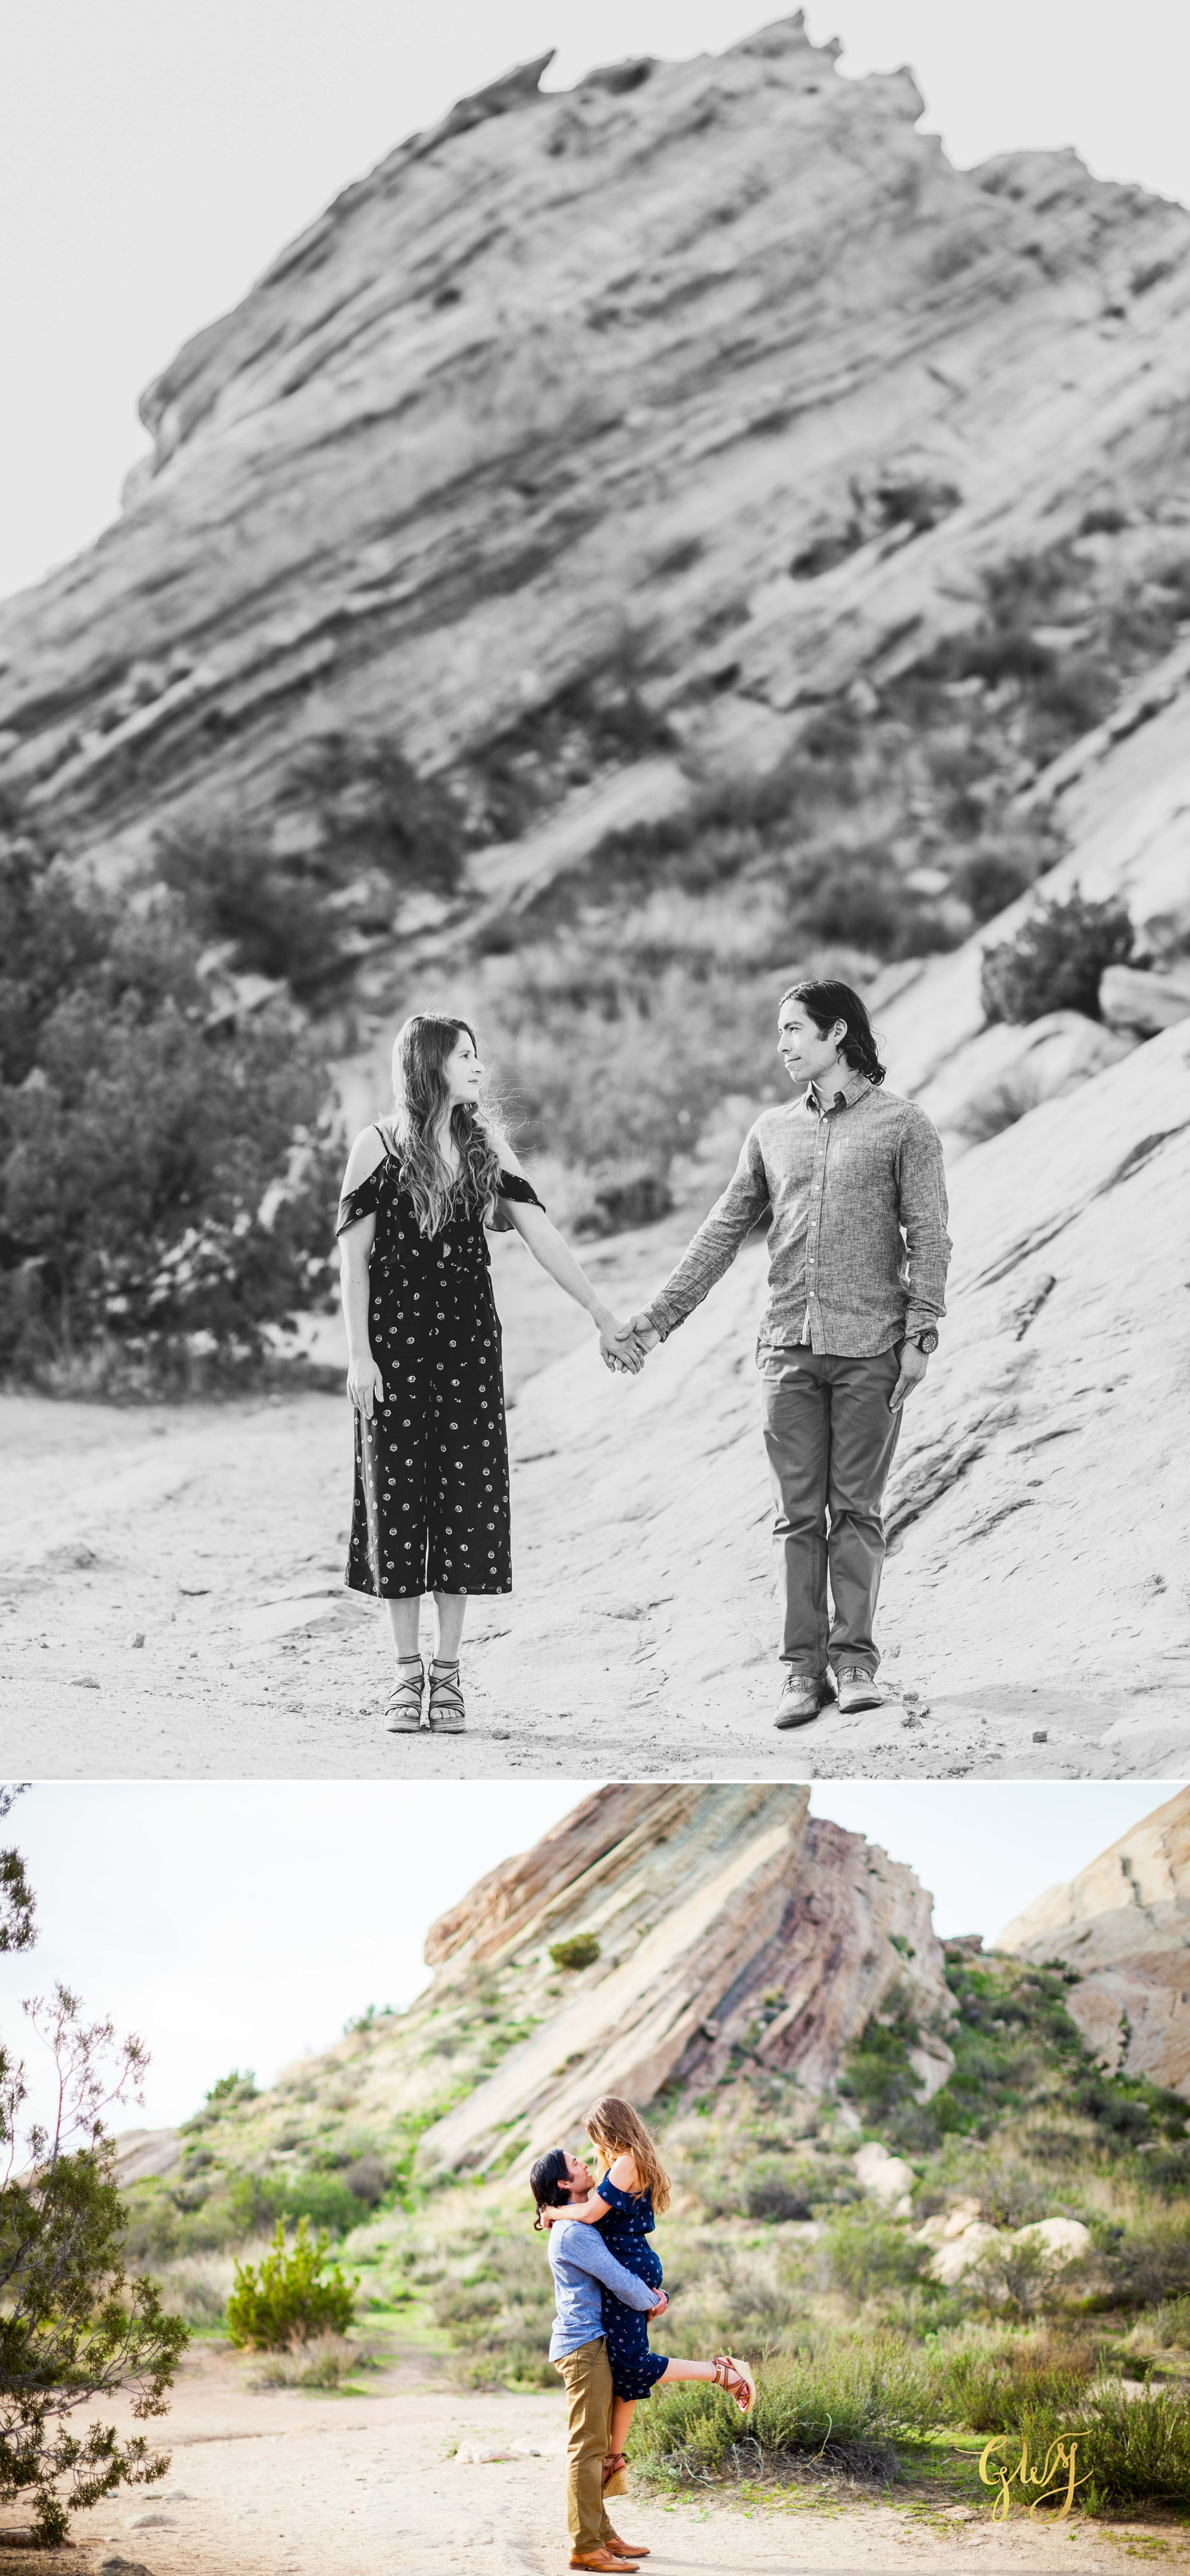 Jose + Sarah Vasquez Rocks Hike at Sunset Adventurous Engagement by Glass Woods Media 8.jpg